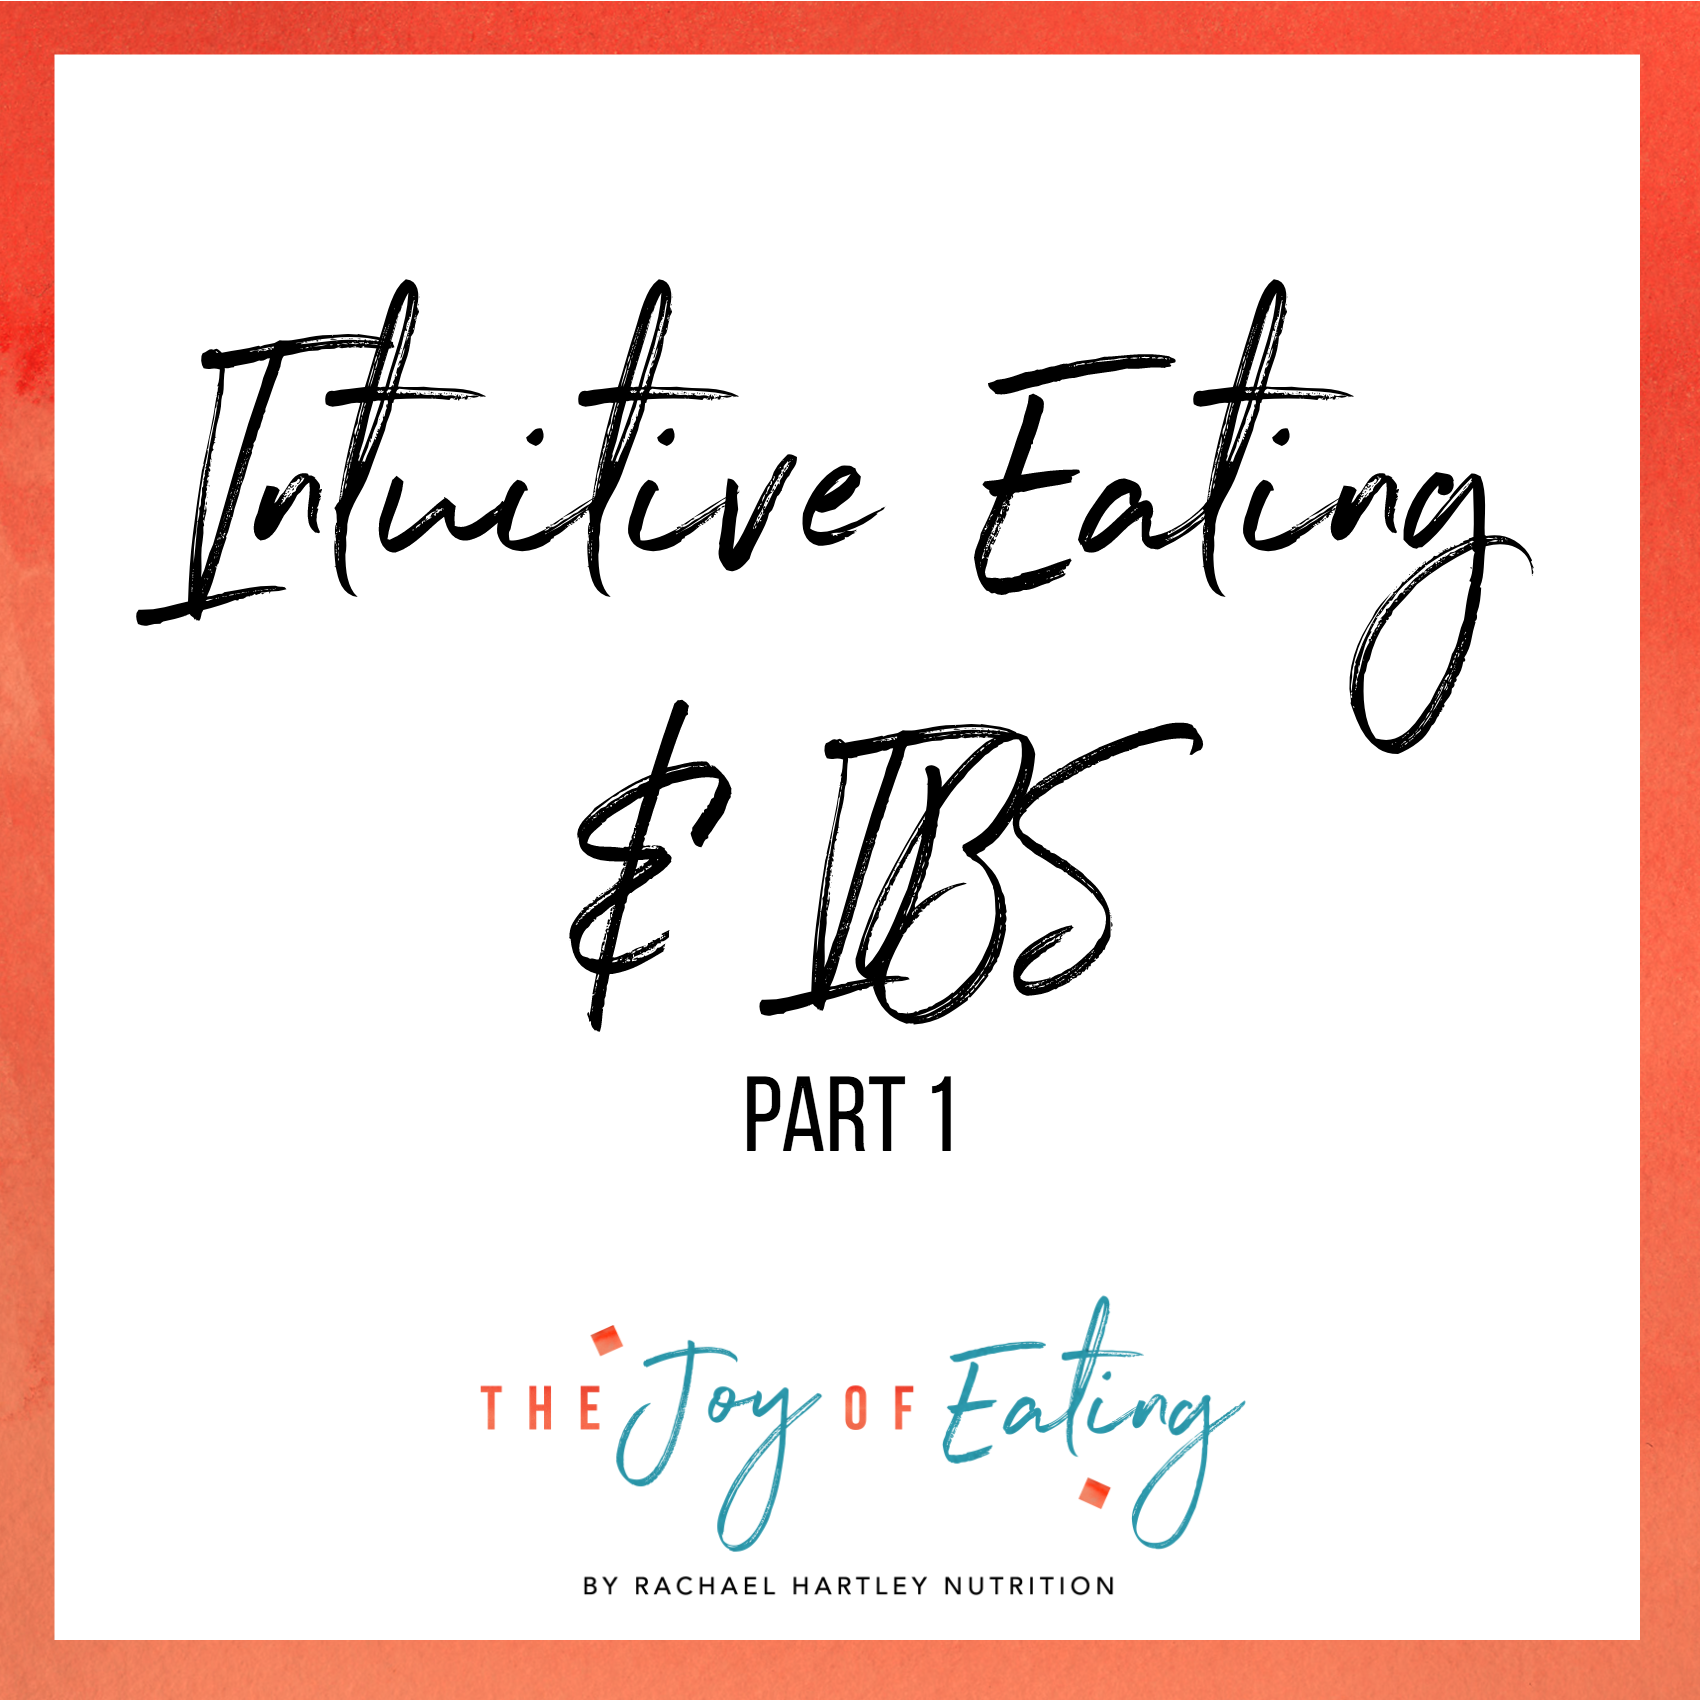 Learn about how intuitive eating can be helpful for IBS. #intuitiveeating #ibs #nutrition #wellness